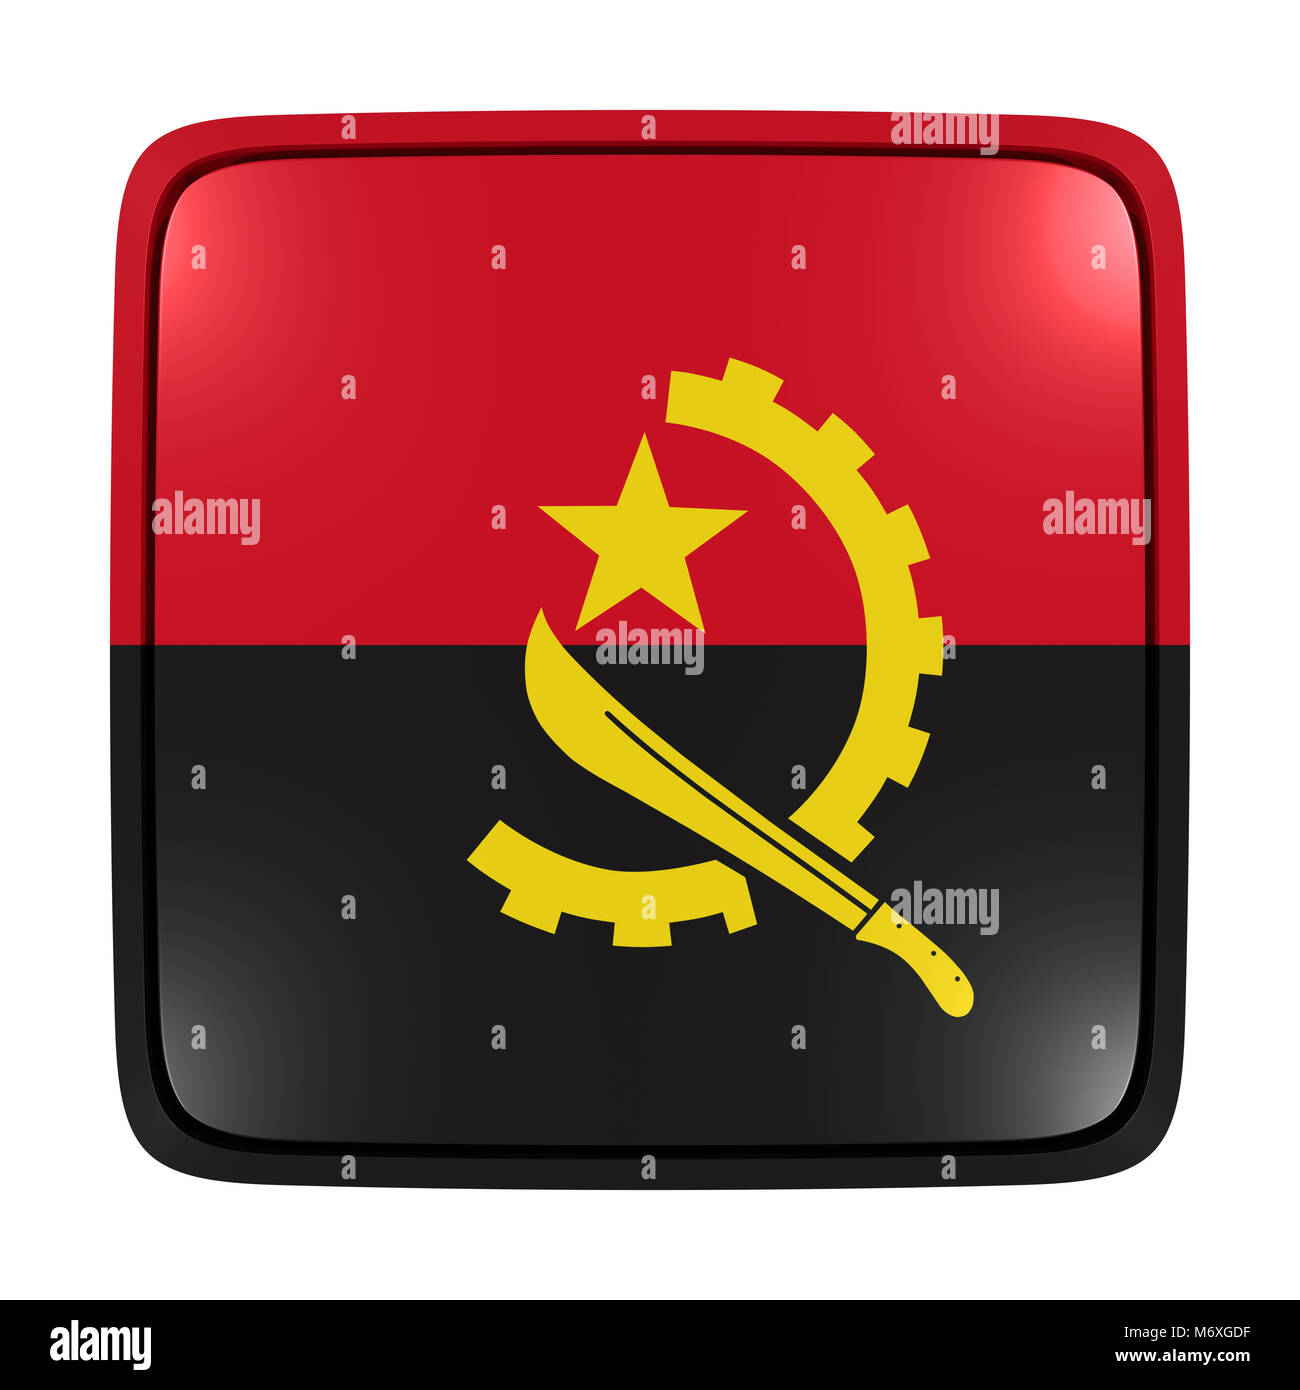 3d rendering of an Angola flag icon. Isolated on white background. - Stock Image